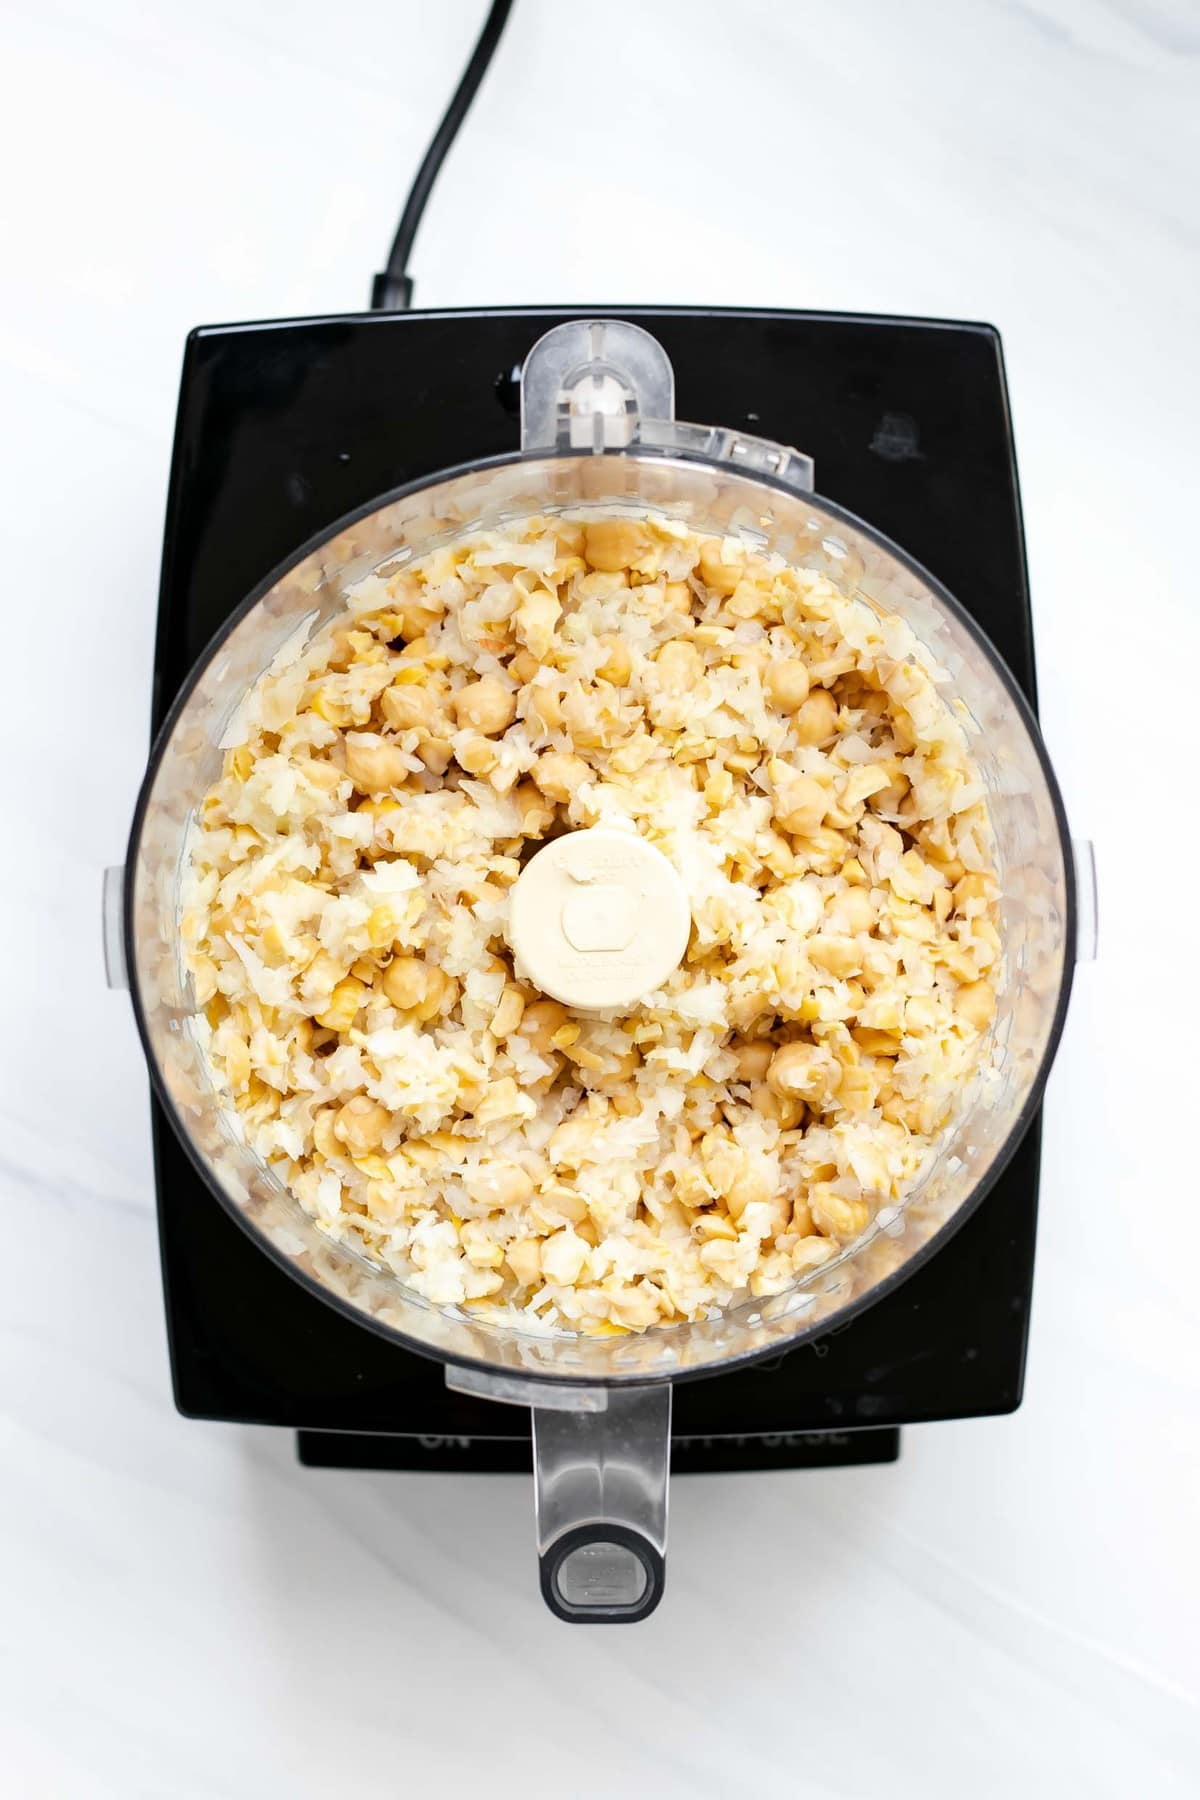 Onion and chickpeas chopped in the food processor,